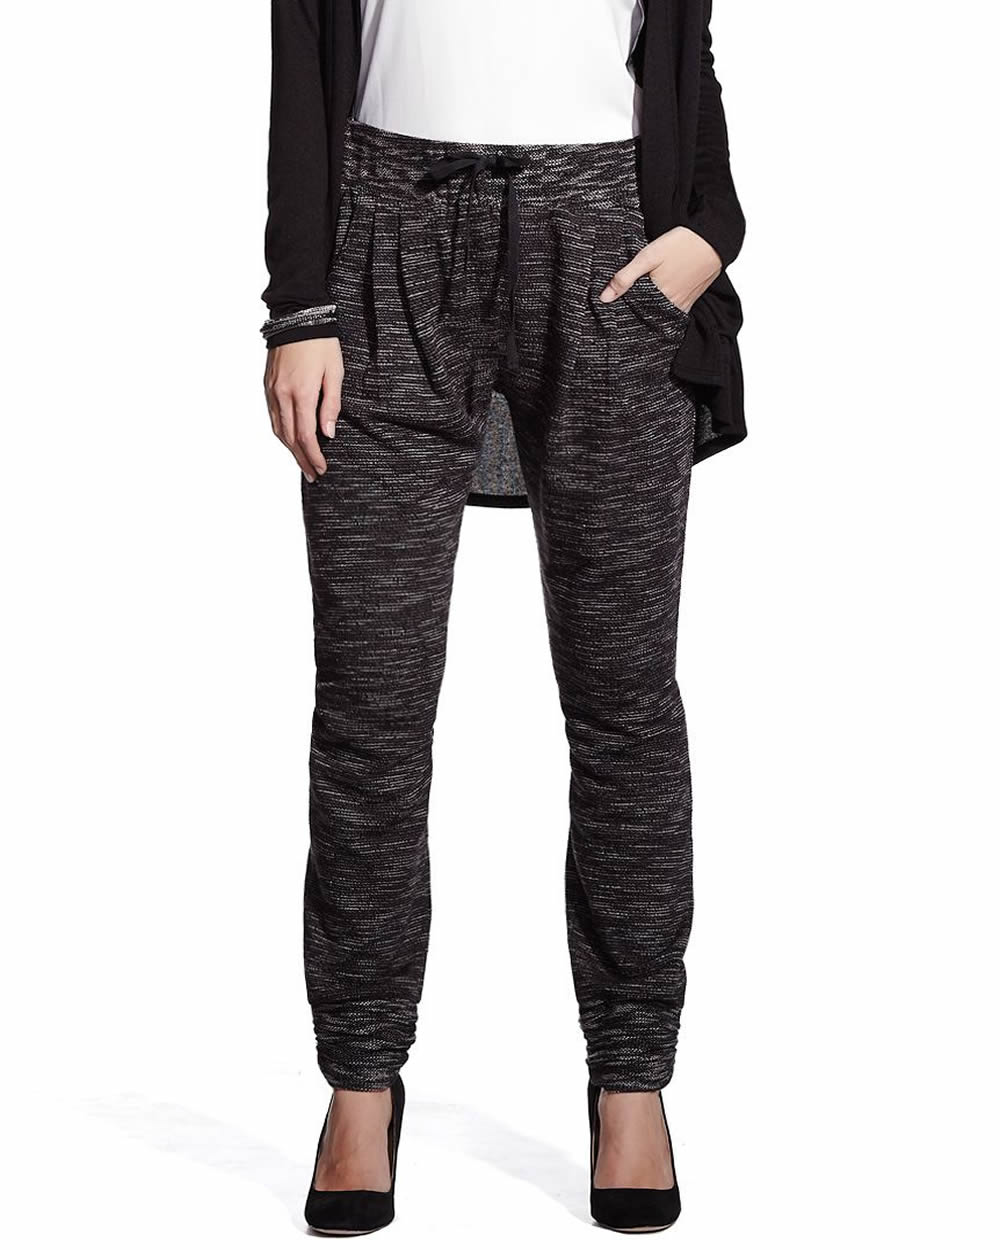 pantalon de jogging chic femmes reitmans. Black Bedroom Furniture Sets. Home Design Ideas